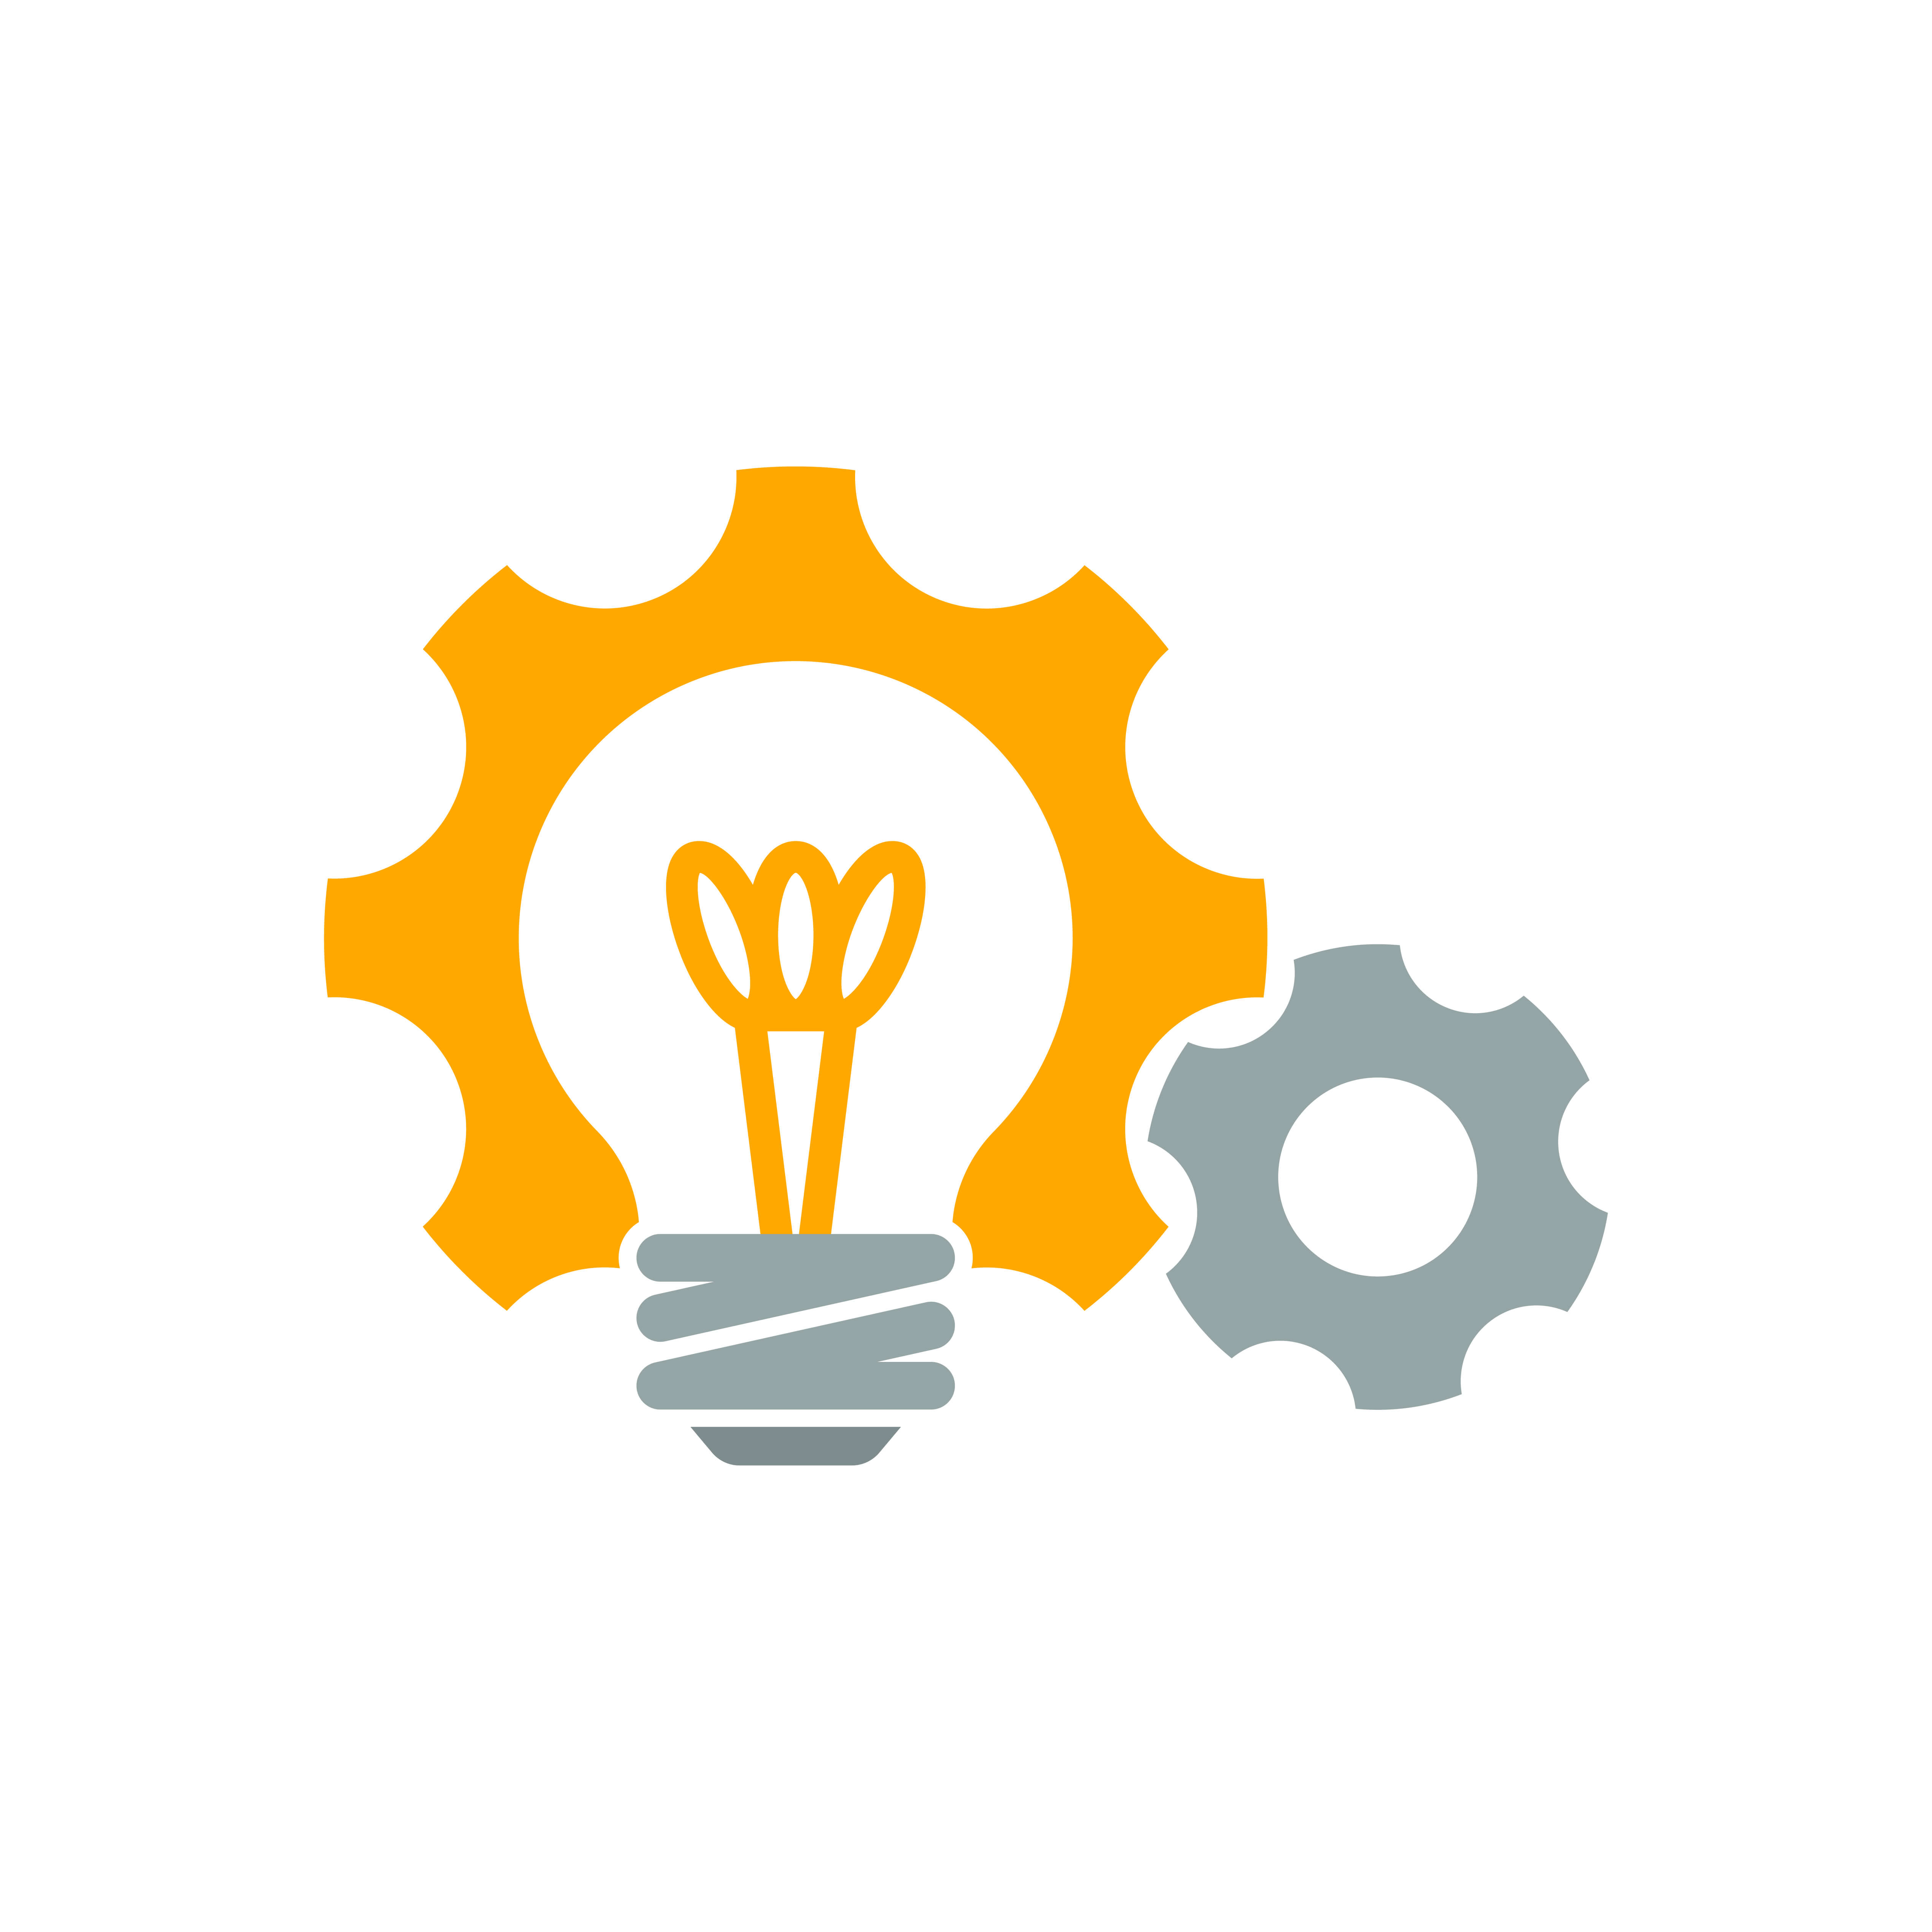 Lightbulb and gear icon